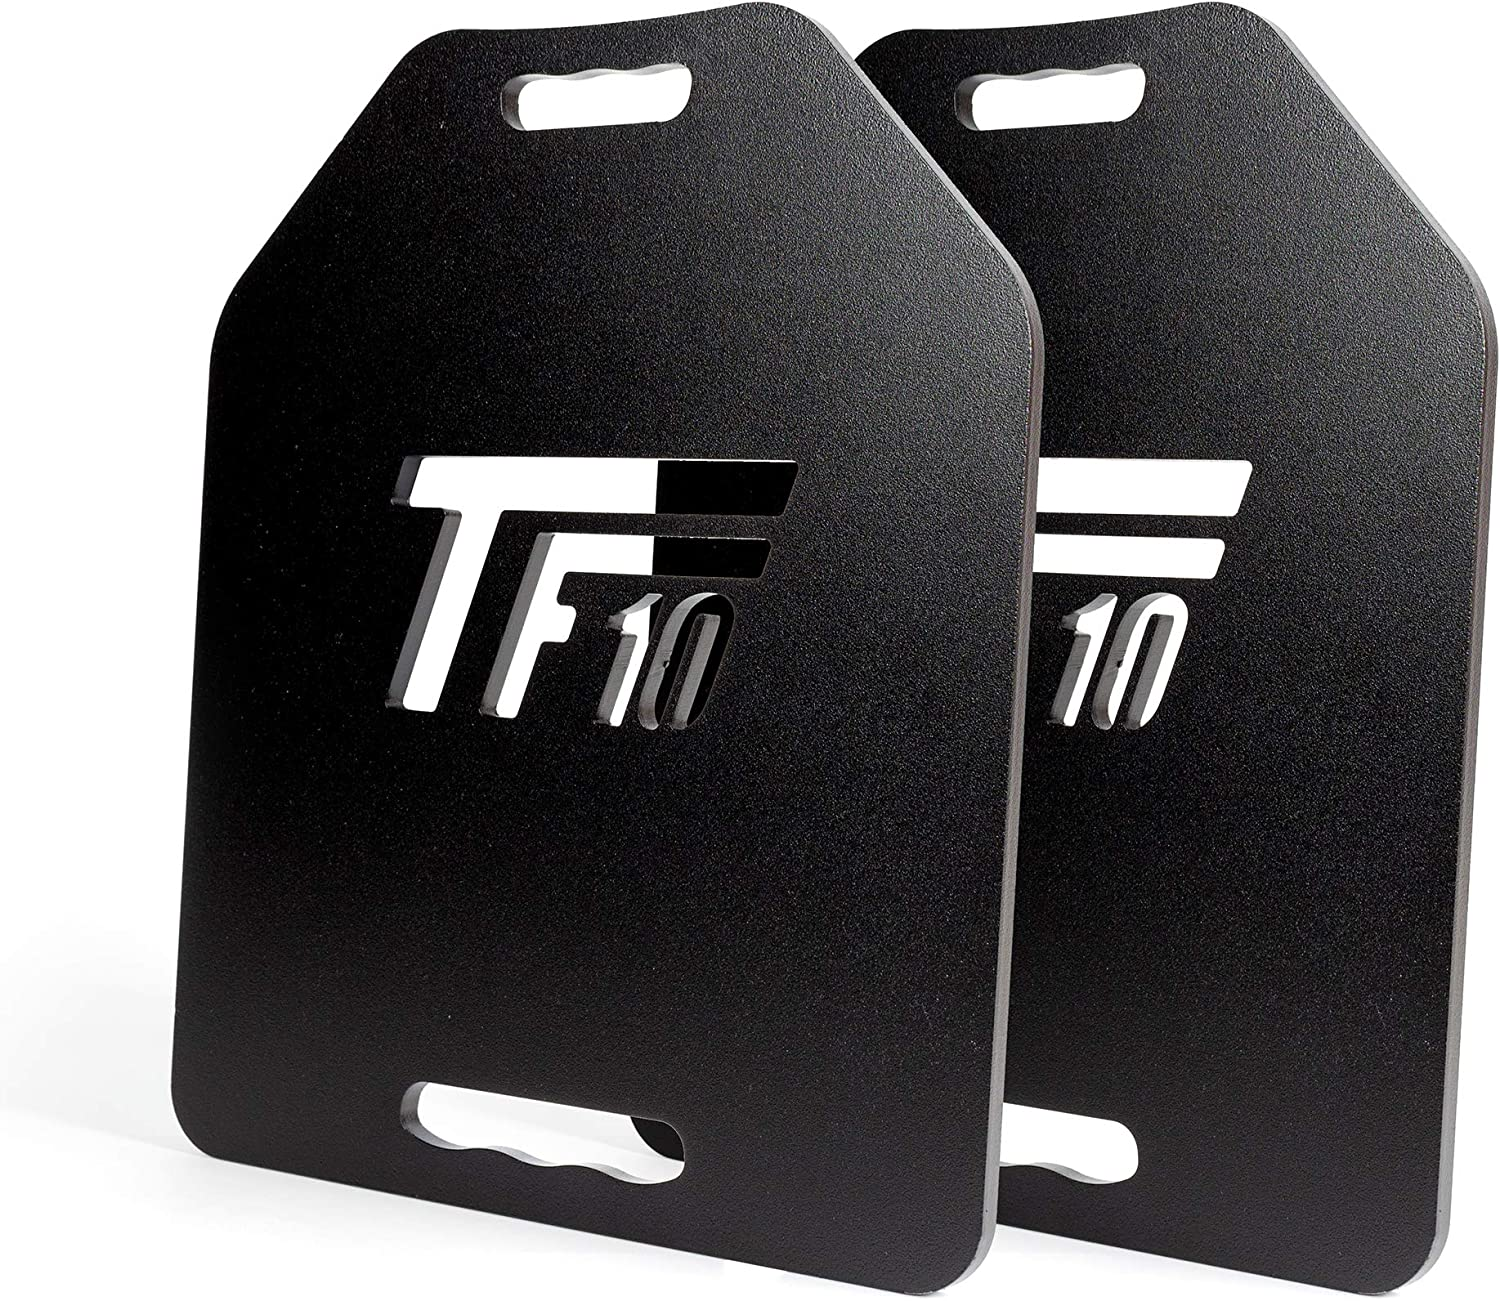 TRAINLIKEFIGHT Weighted Plates 10lbs Flat Version (20lbs Pair) - Juego de Placas Planas lastradas de Peso de 4,5kg (9kg Total Pareja), sin Chaleco